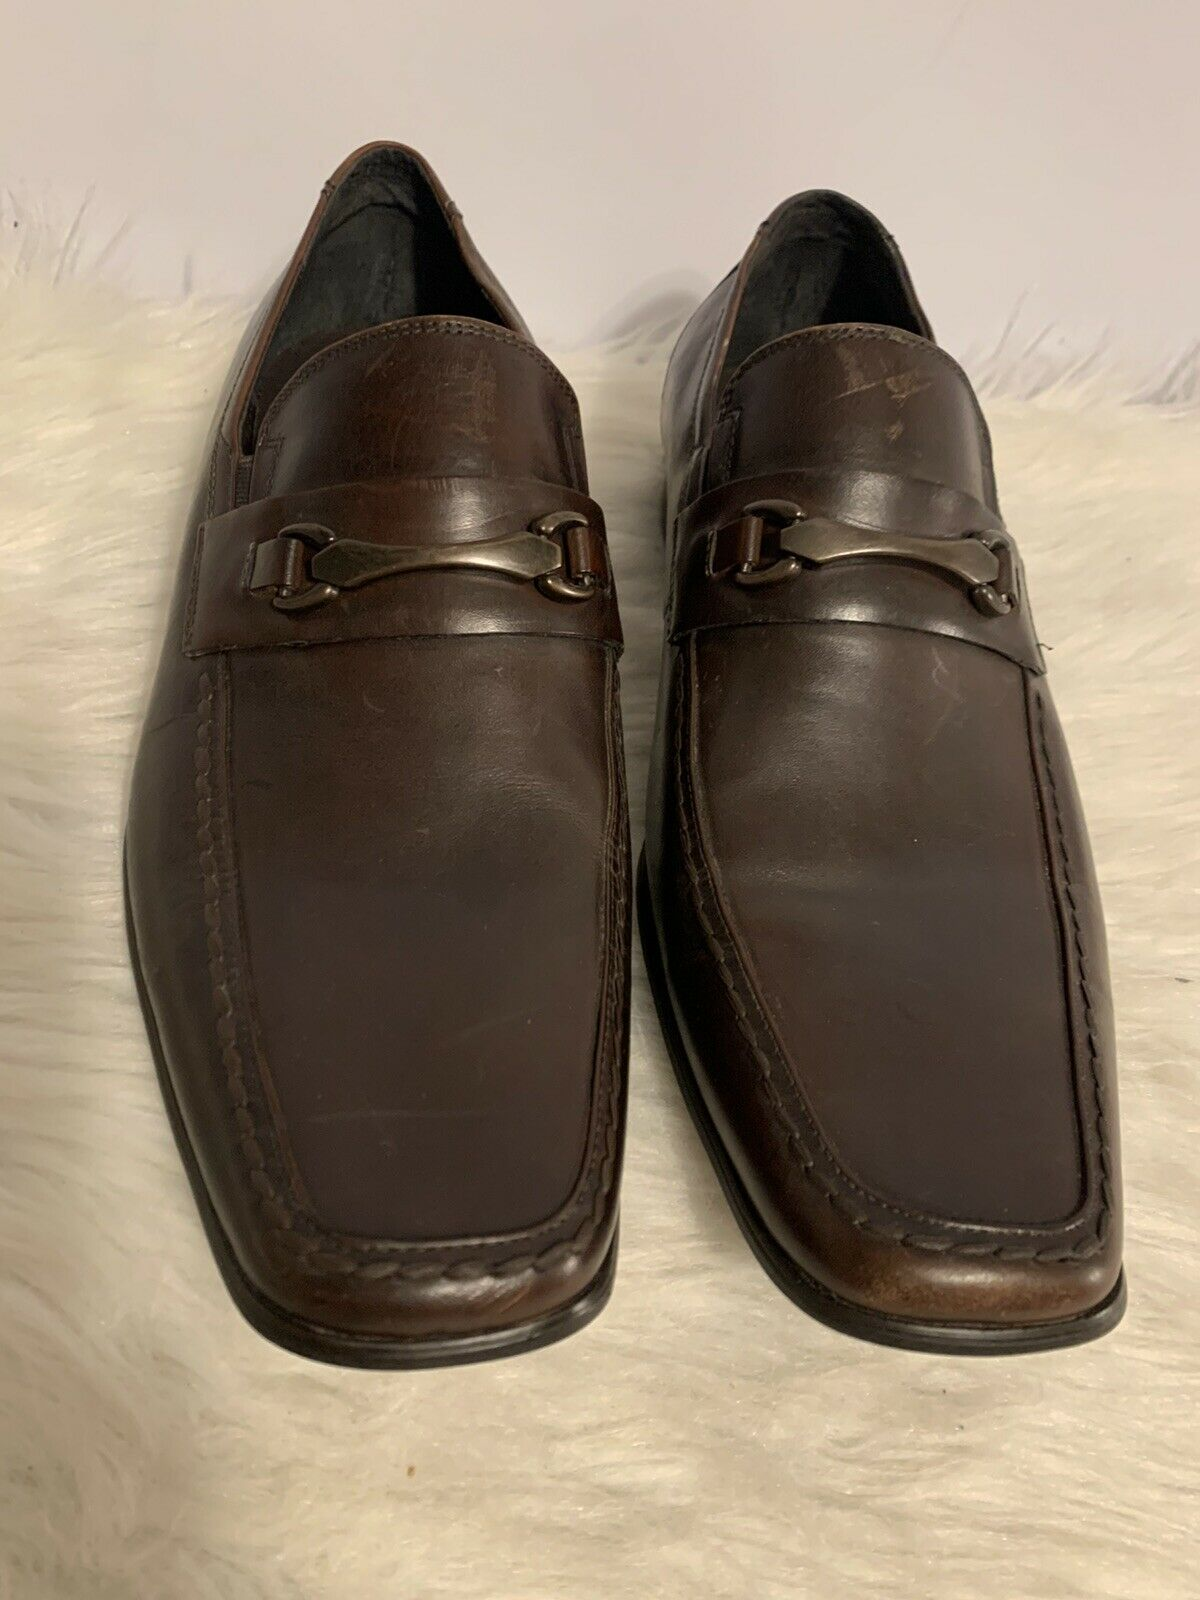 Kenneth Cole Brown Leather Slip On Loafers Men's Size 10.5 M